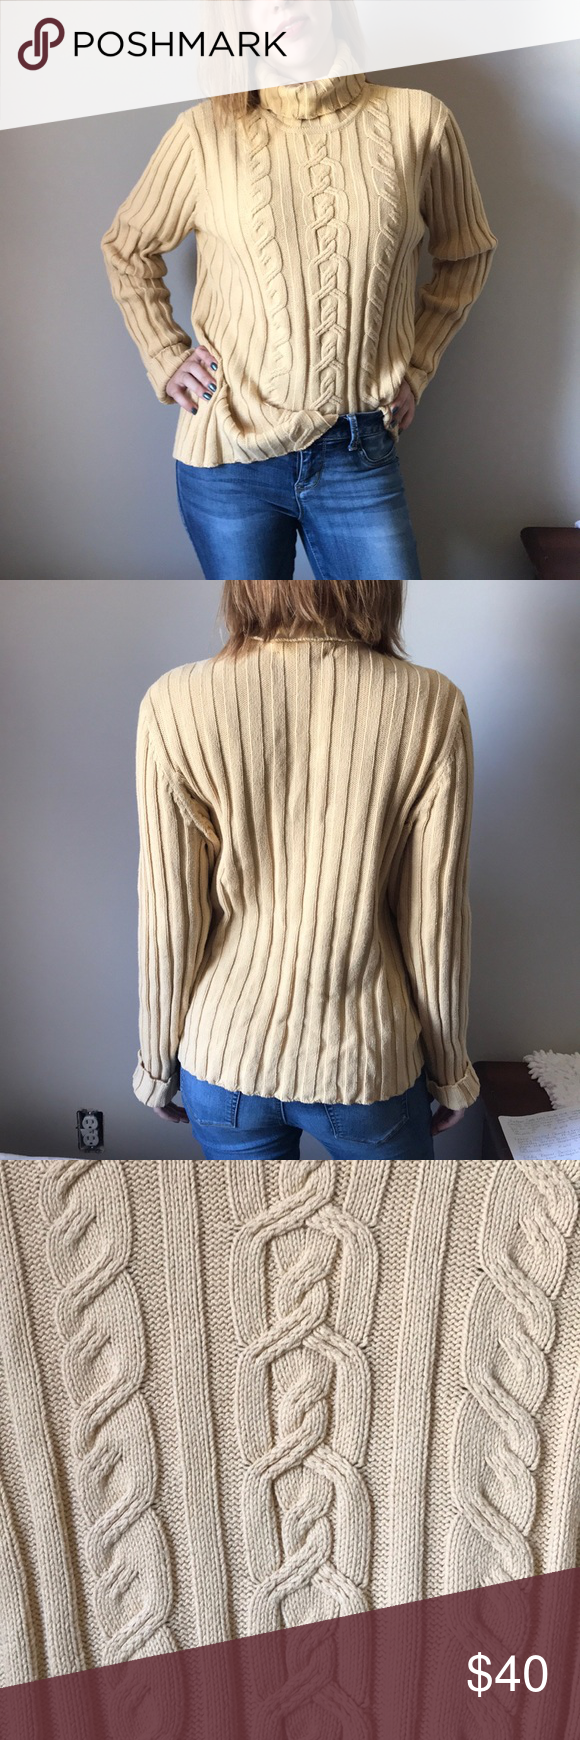 Vintage Cable Knit Turtle Neck Sweater Size XL Sweater